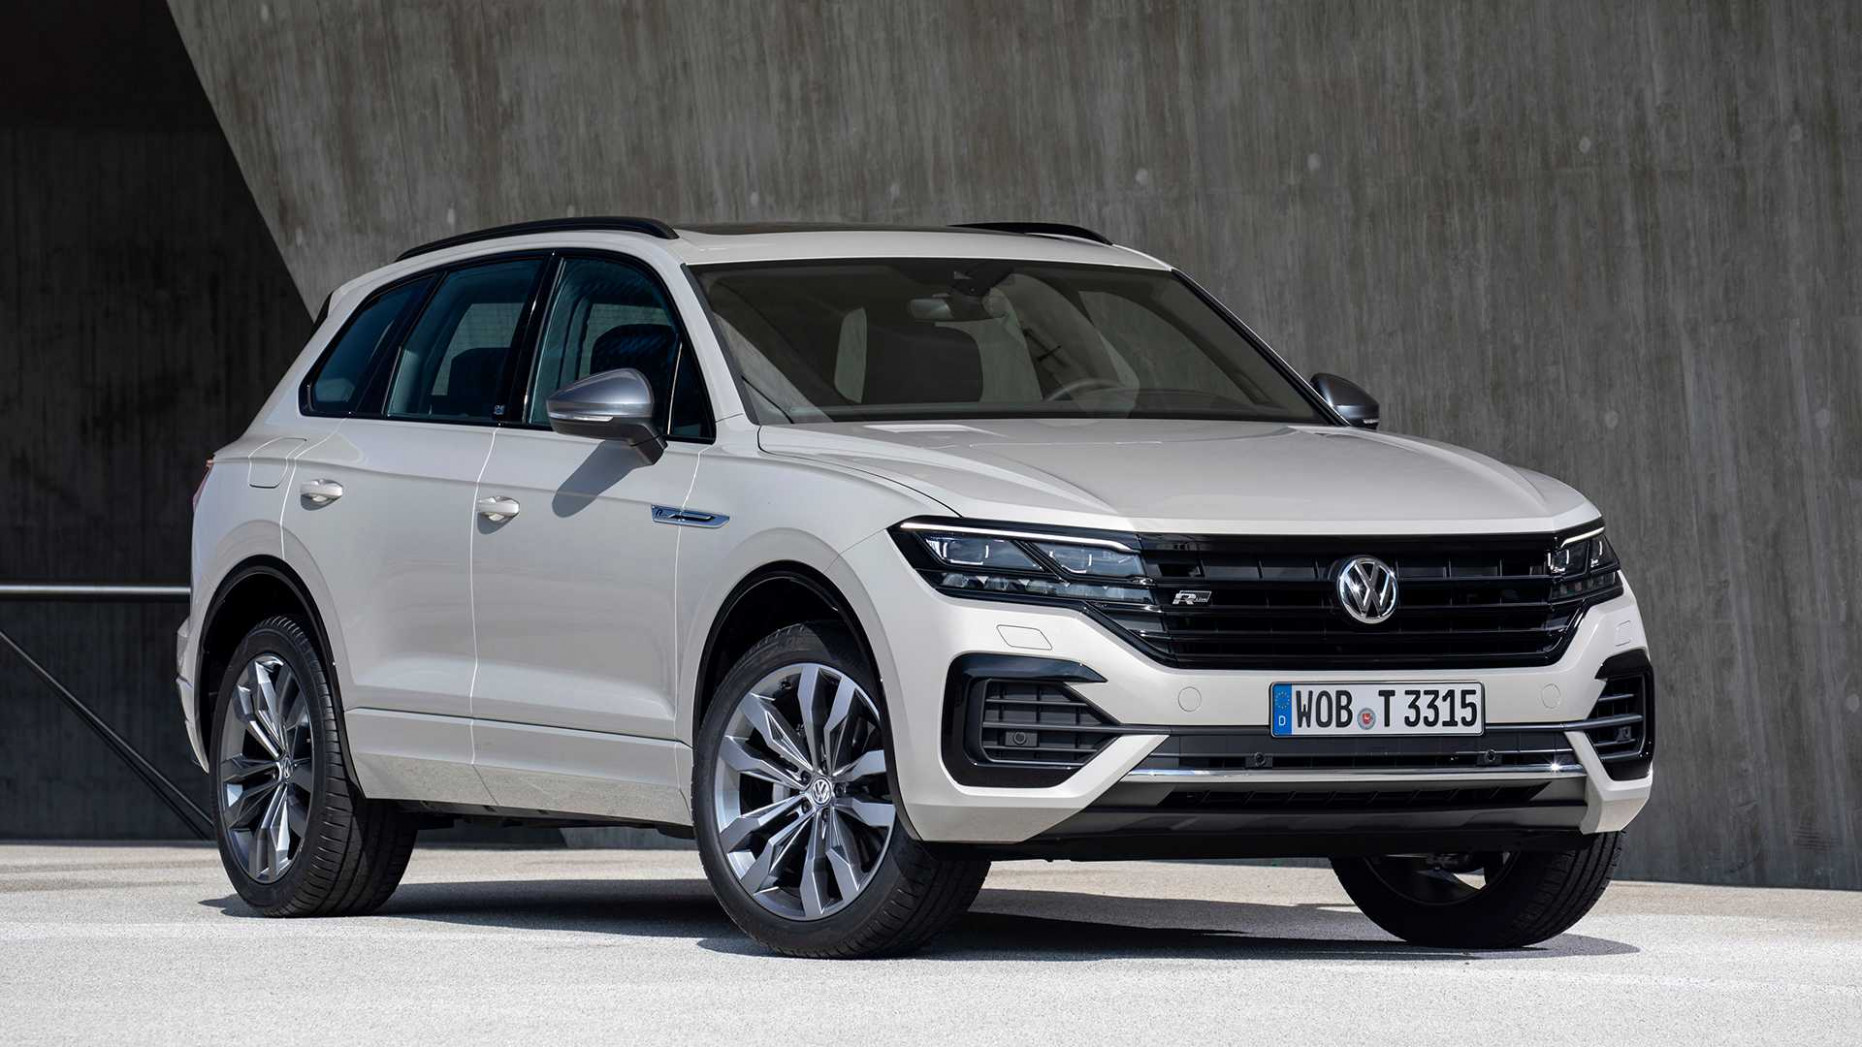 6 All New Xe Volkswagen Tiguan 6 Redesign and Concept with Xe ...